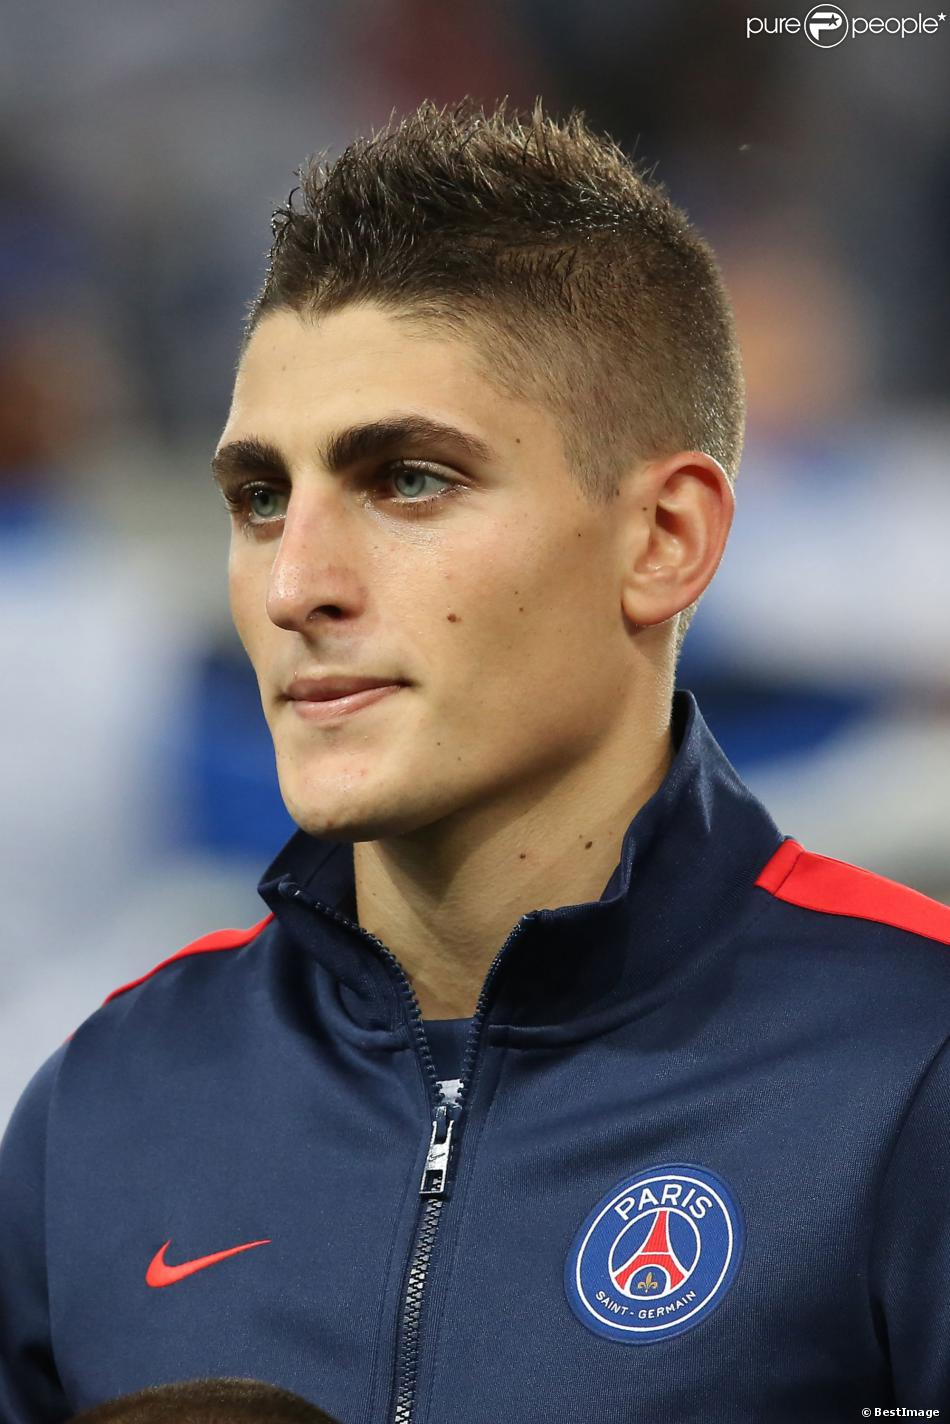 Marco Verratti Fotos Images Details Uk